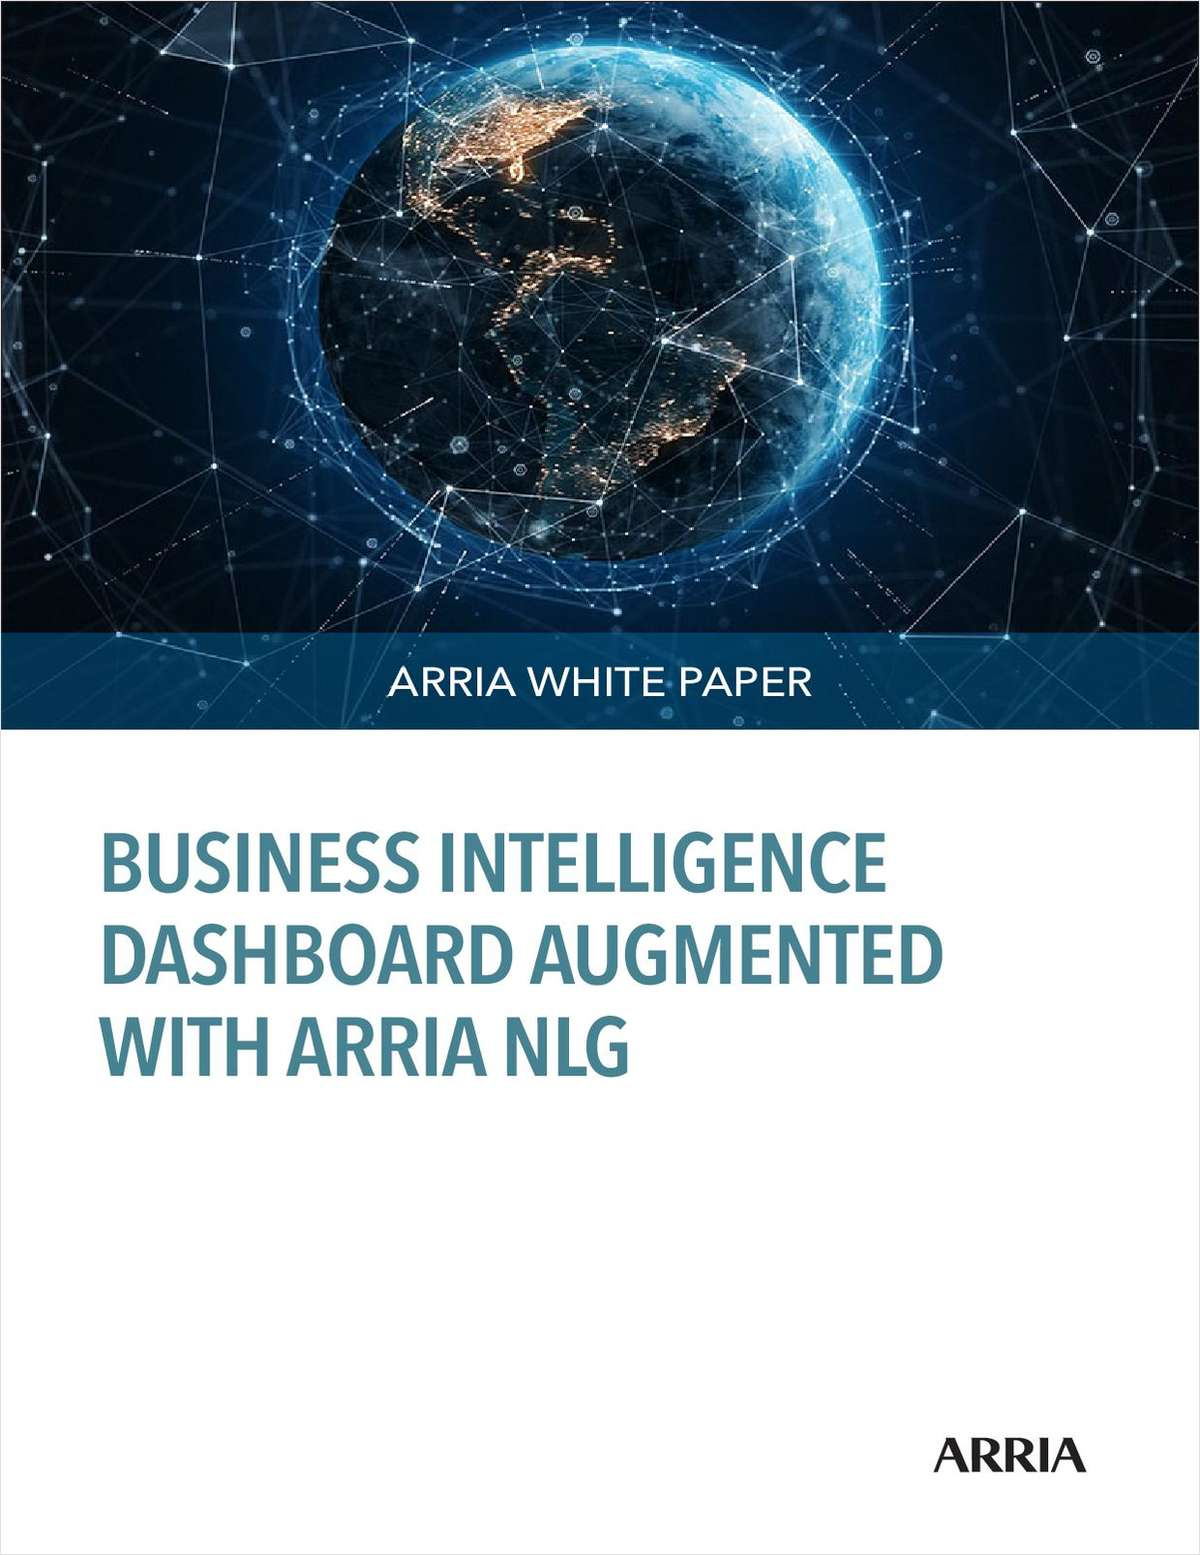 BUSINESS INTELLIGENCE DASHBOARD AUGMENTED WITH ARRIA NLG